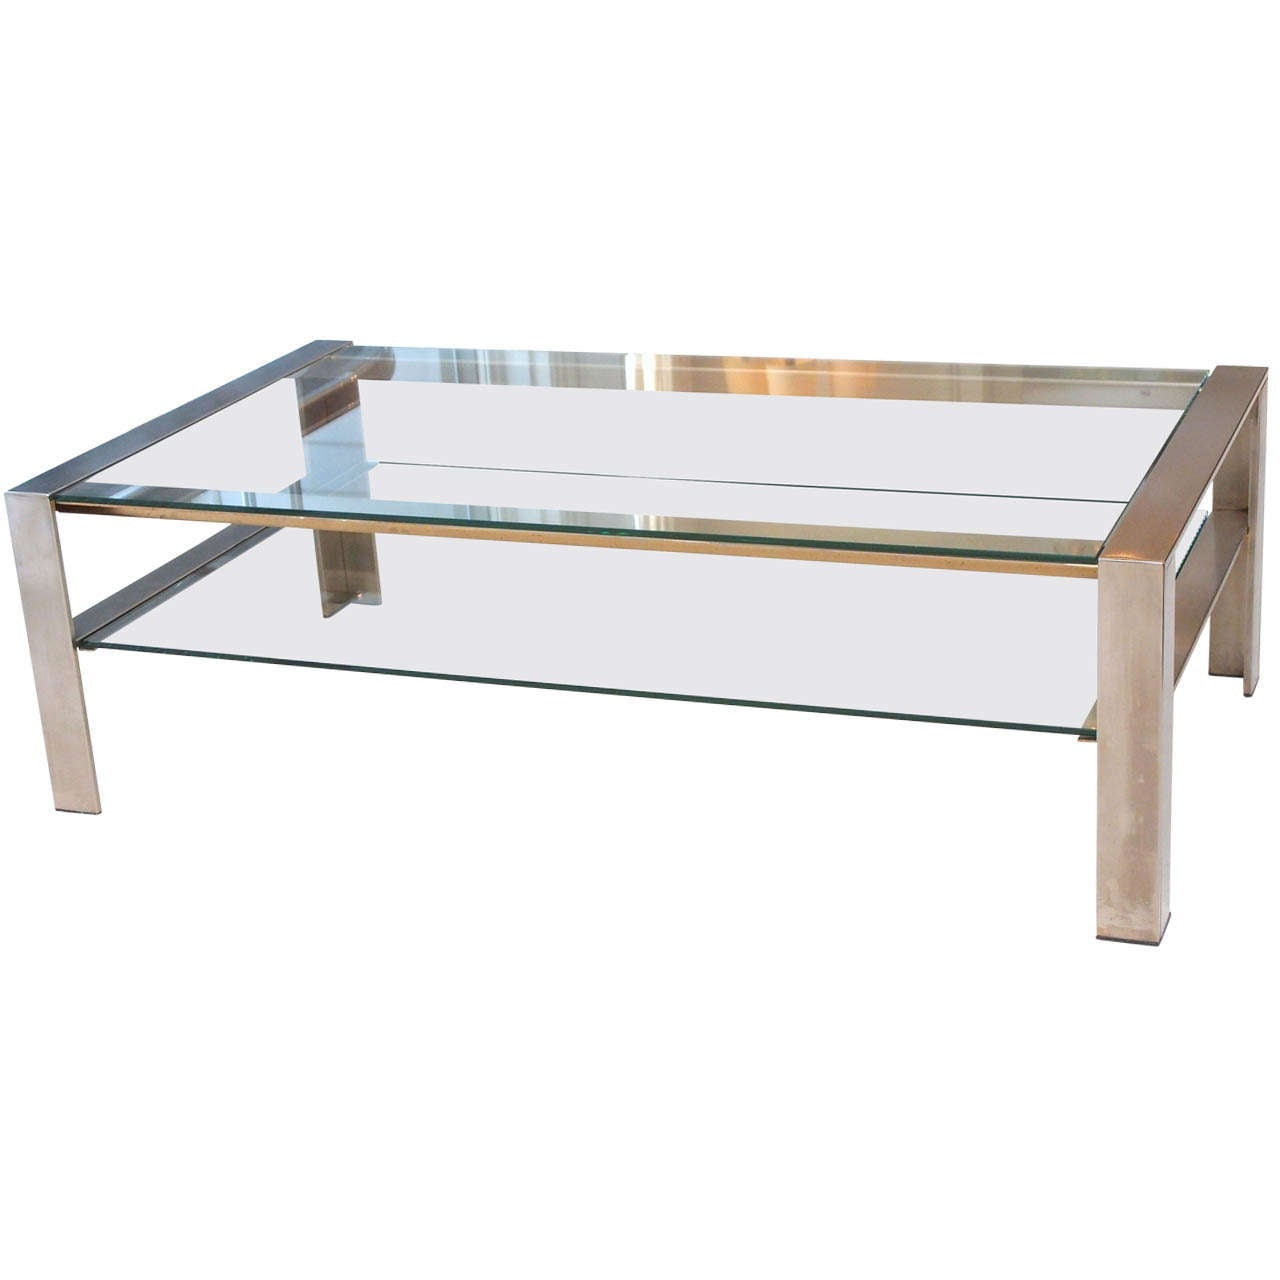 handsome coffee table in brushed stainless steel at 1stdibs